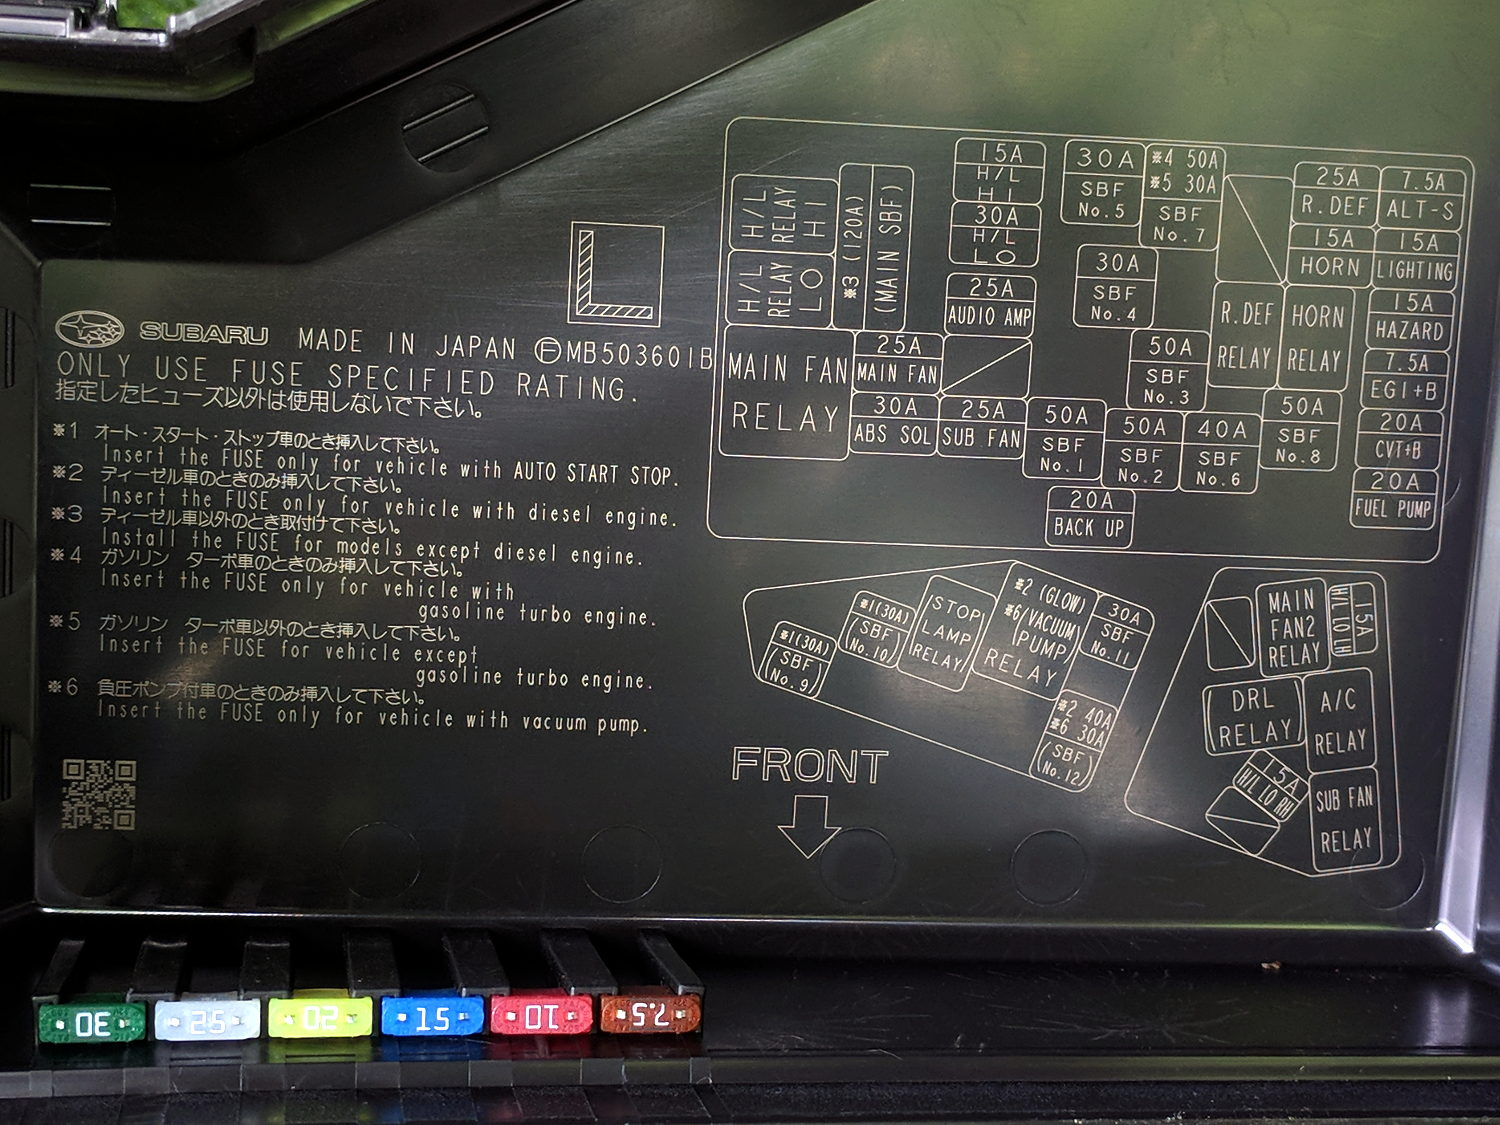 hight resolution of wrx fuse diagram wiring diagram go 2015 wrx speaker wiring diagram 2011 subaru forester fuse box